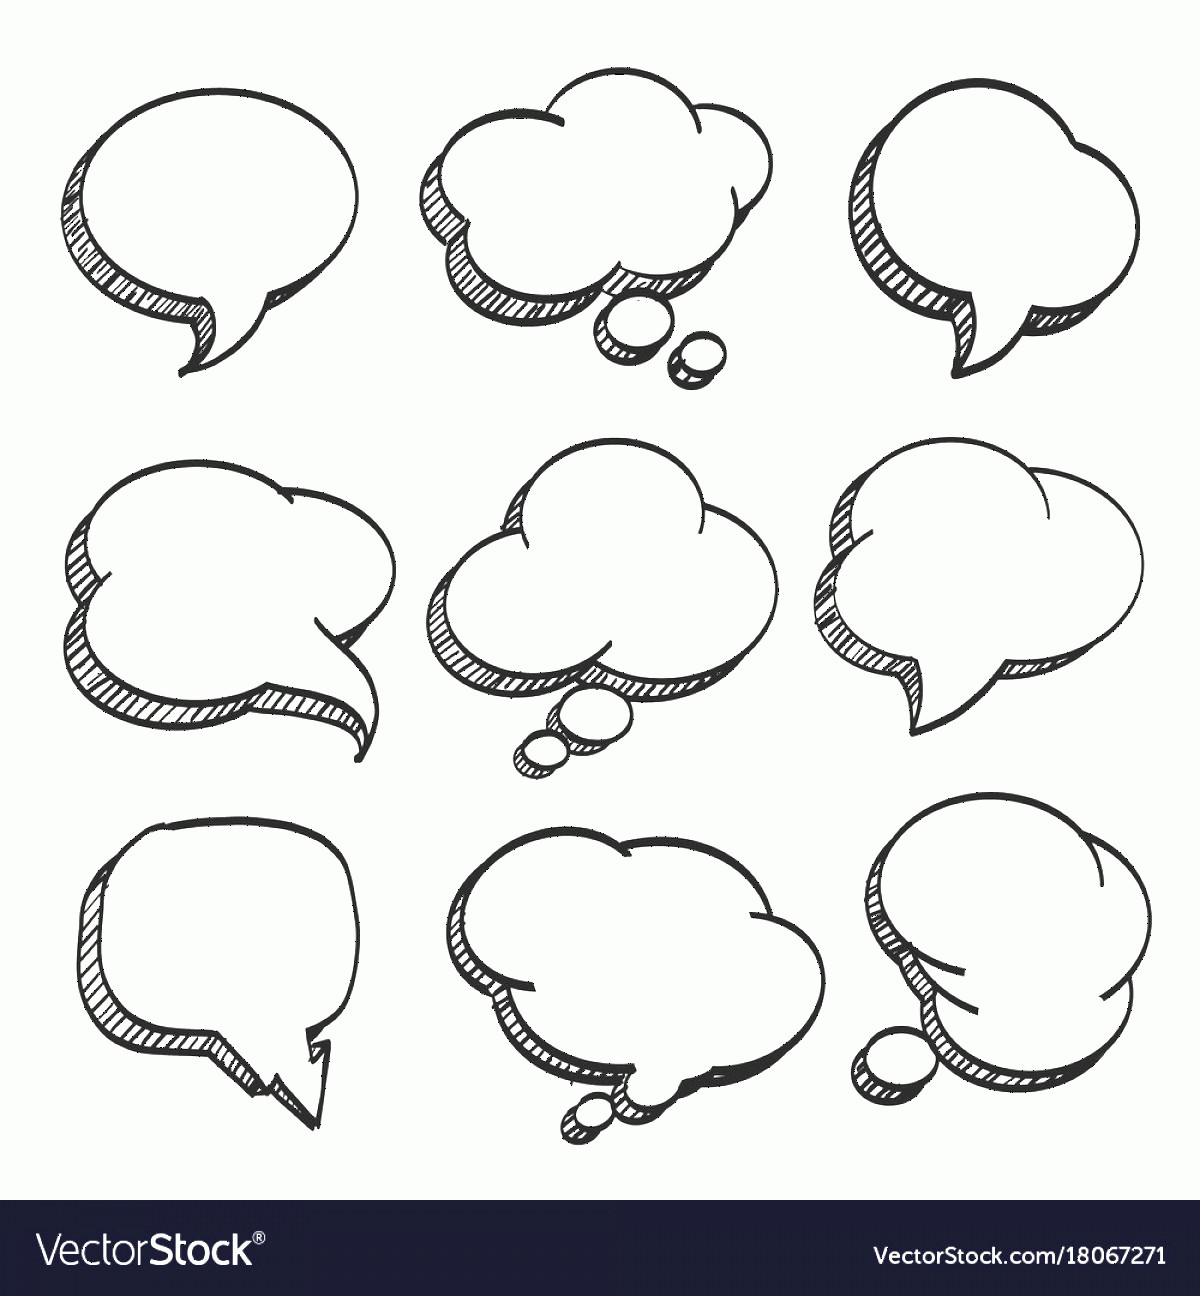 Thought Bubble Vector Sketch: Sketch Of Hand Drawn Comic Speech Bubble Vector